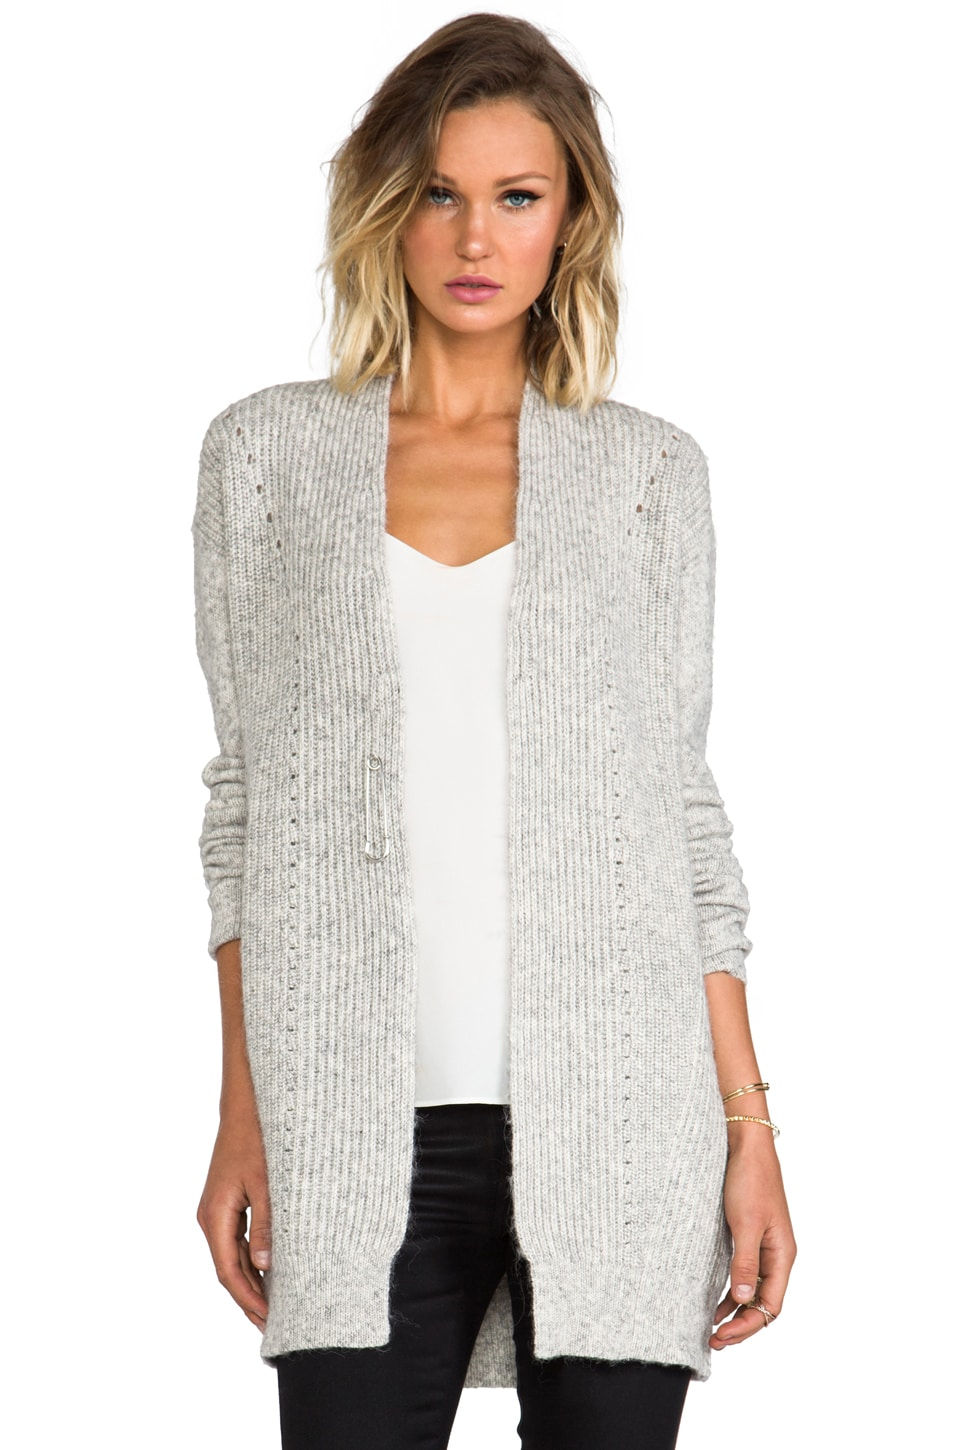 DEREK LAM 10 CROSBY Long Sleeve Cardigan in Grey